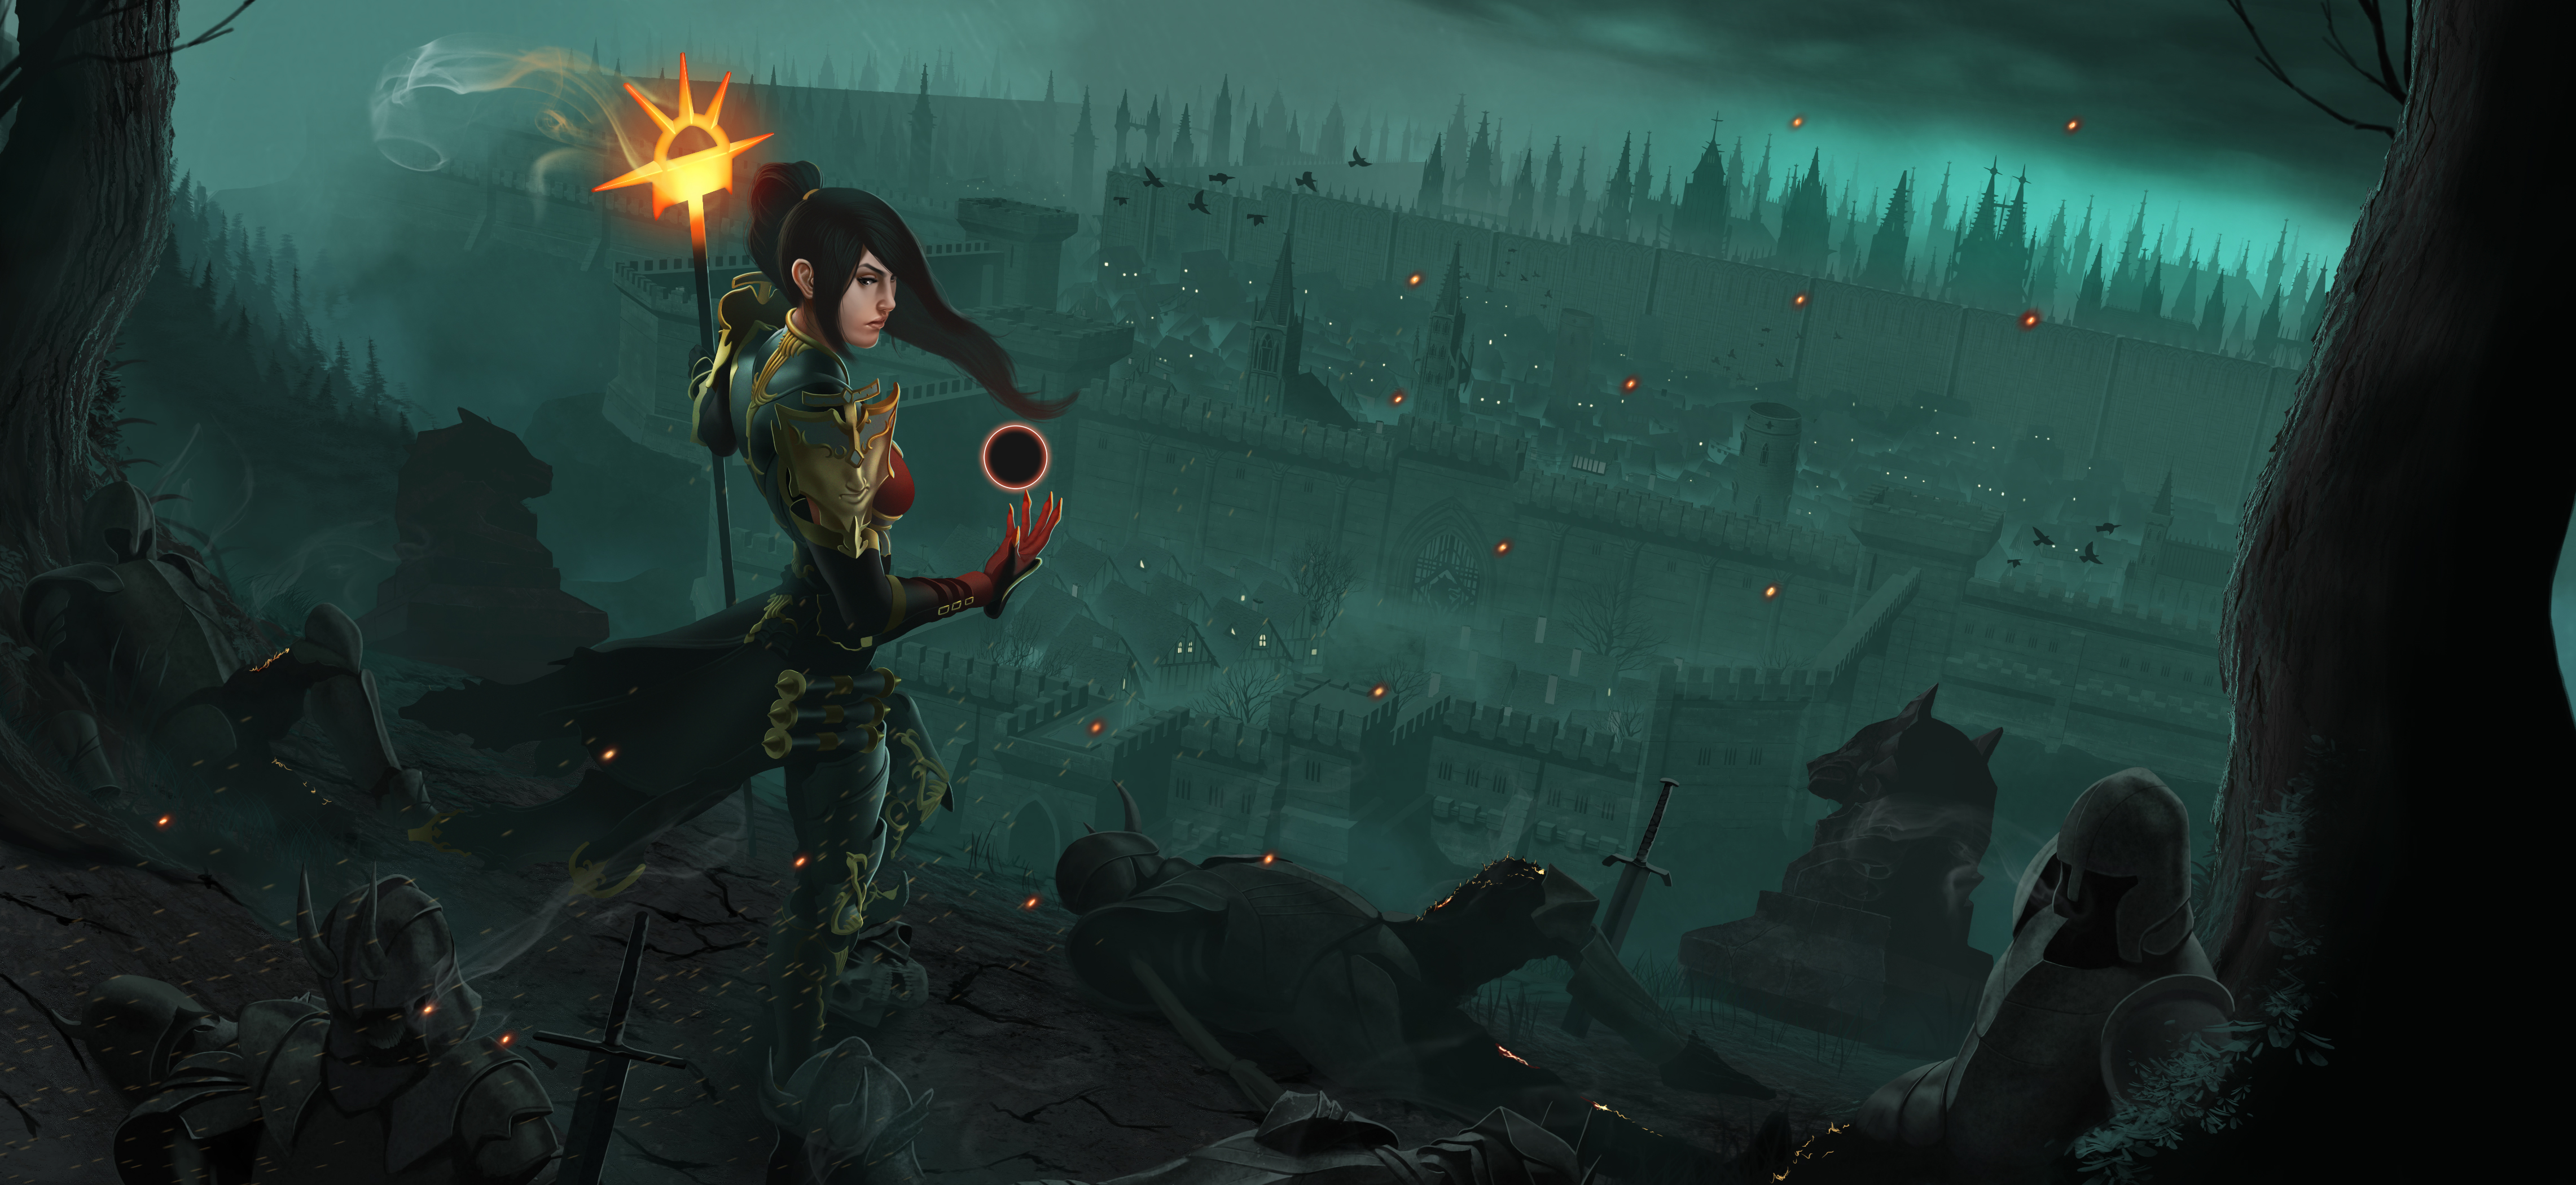 Fantasy Wizard Background 1 Hd Wallpapers: Diablo III Wallpapers, Pictures, Images